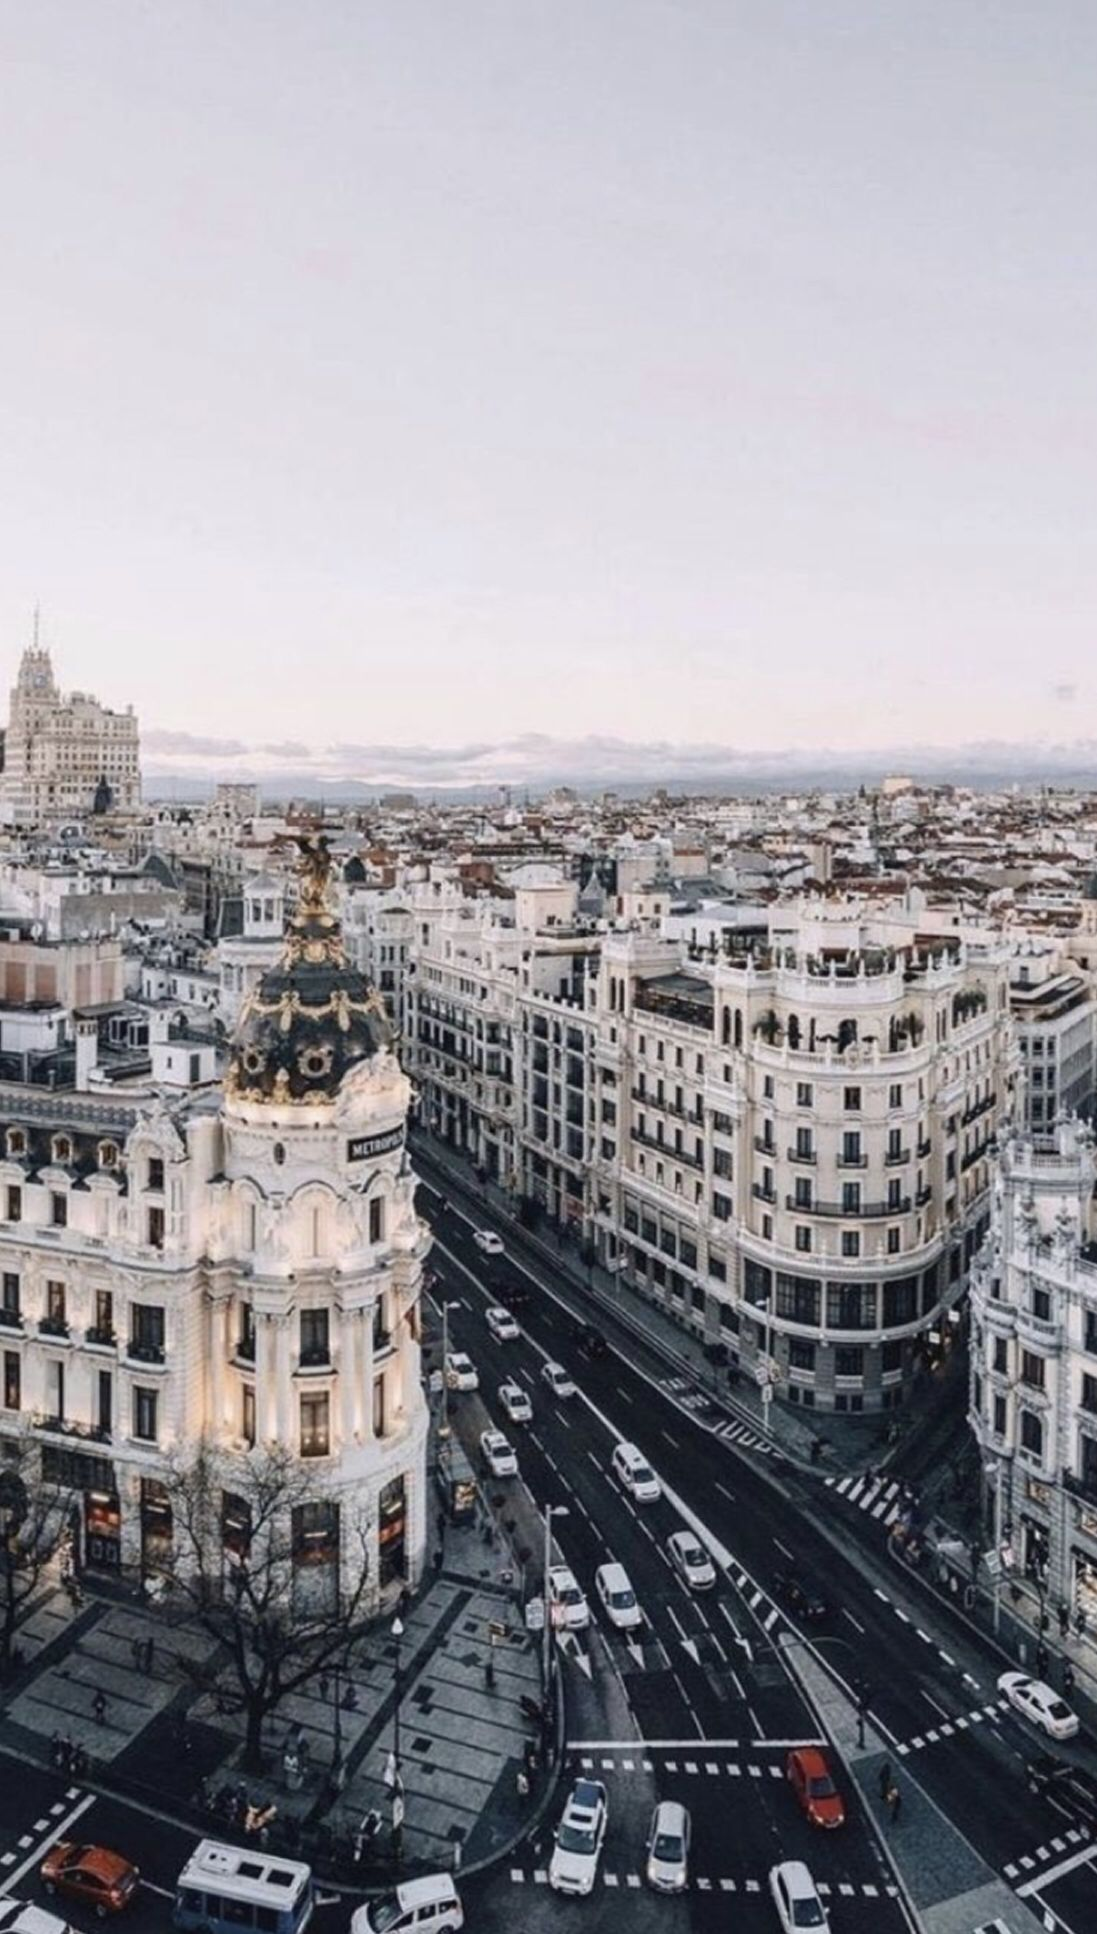 background travel inspo tumblr milano italy france